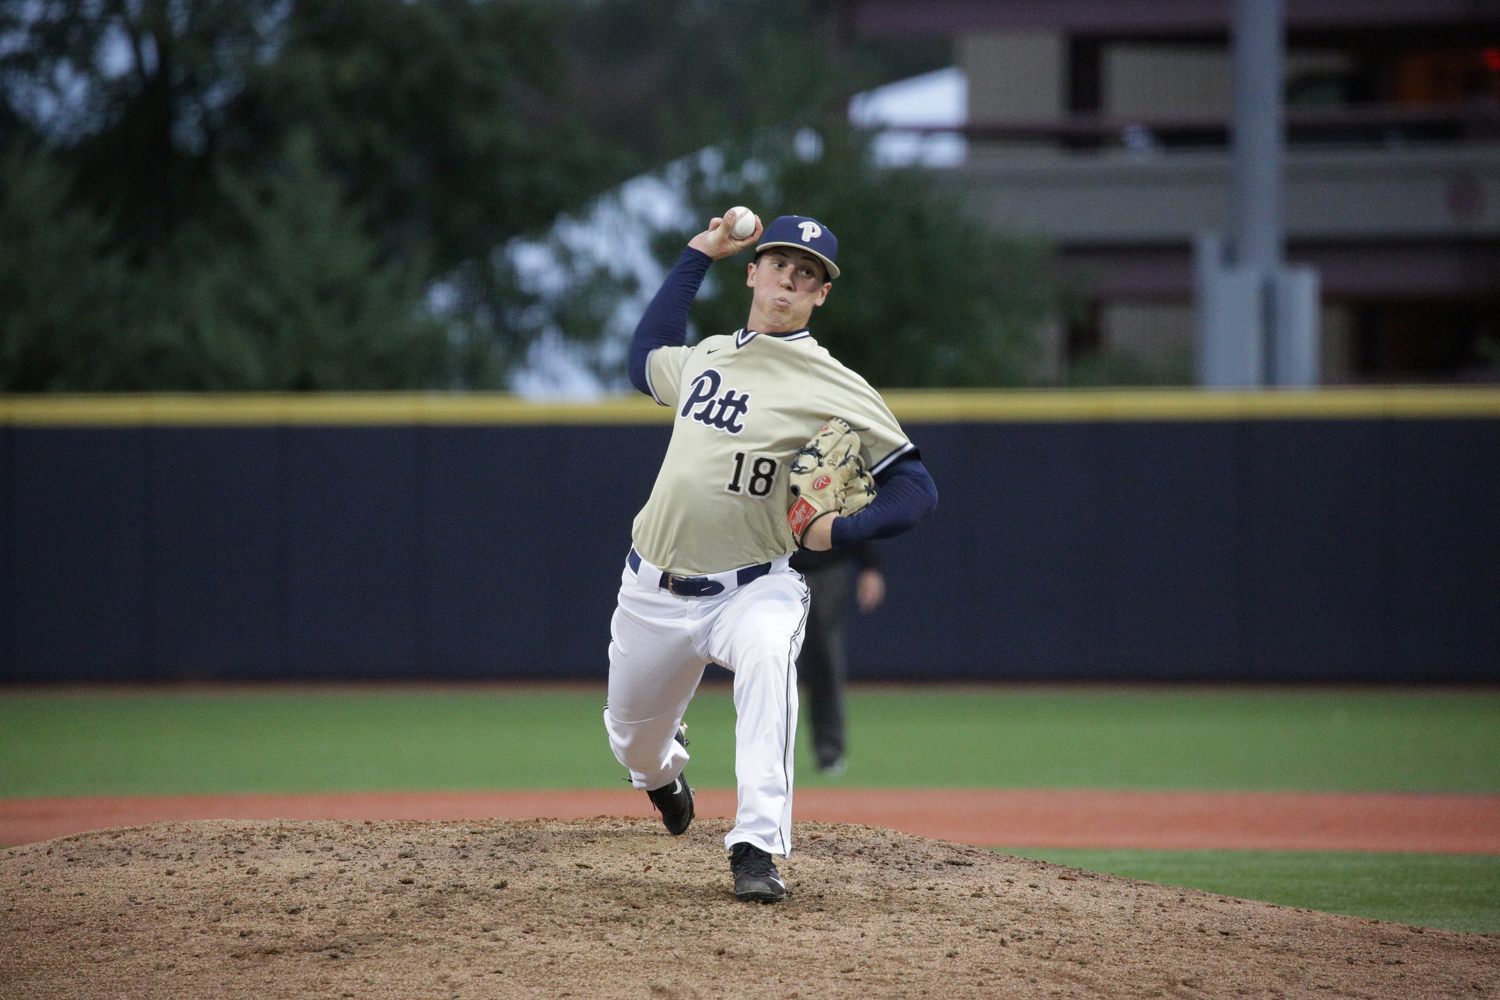 Right-hand pitcher Dan Hammer was drafted by the Baltimore Orioles in the 13th round of the MLB draft.